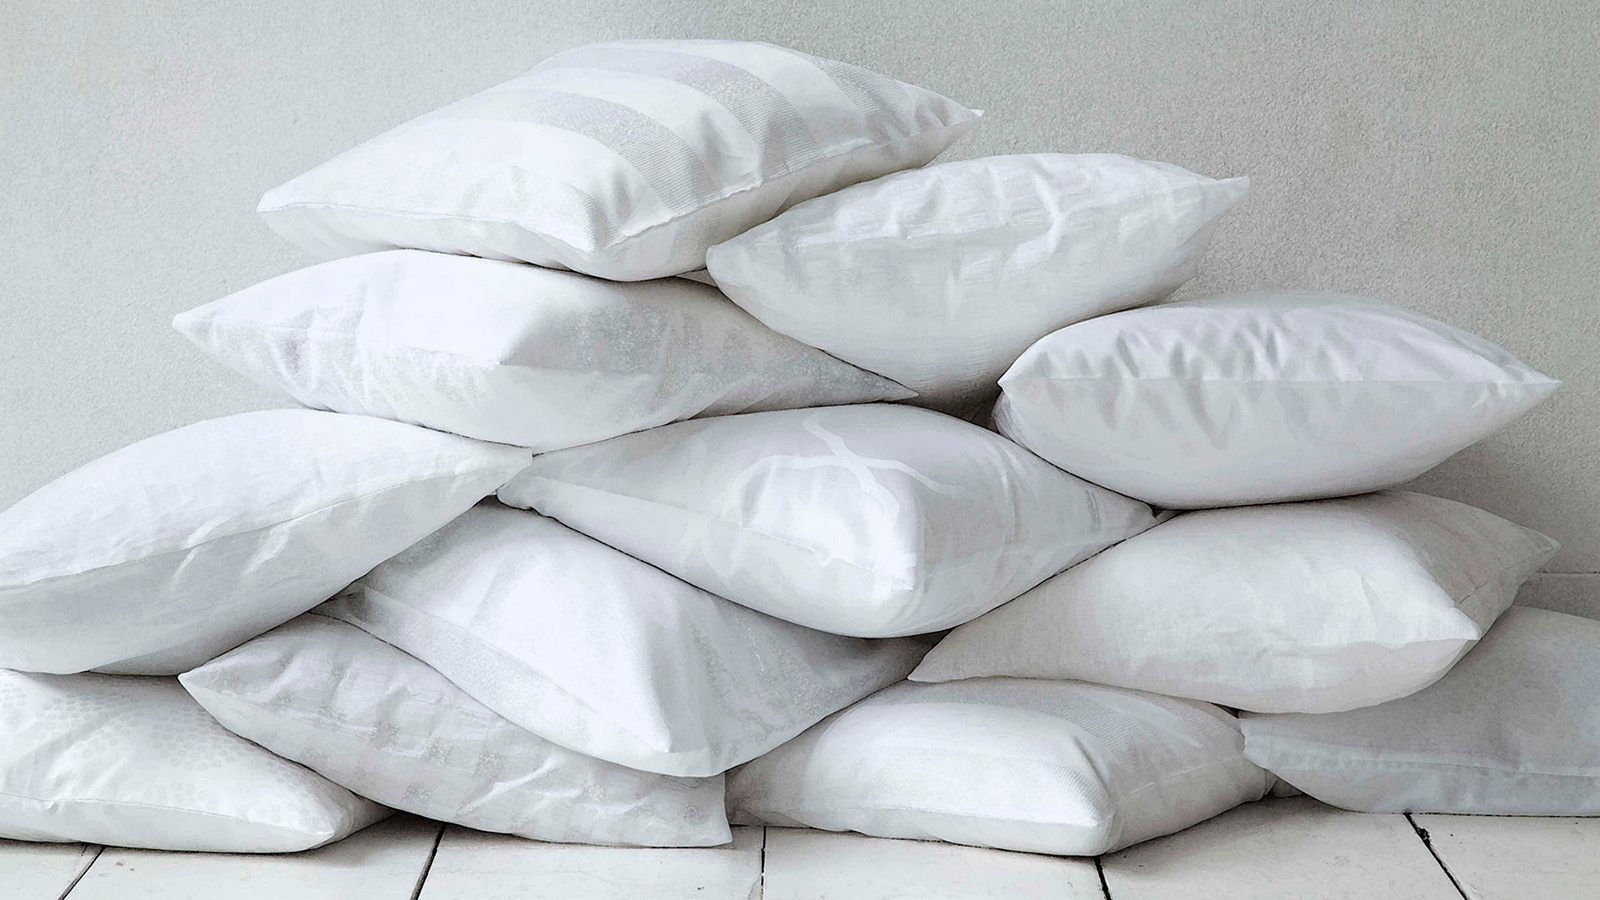 Pile of clean white pillows